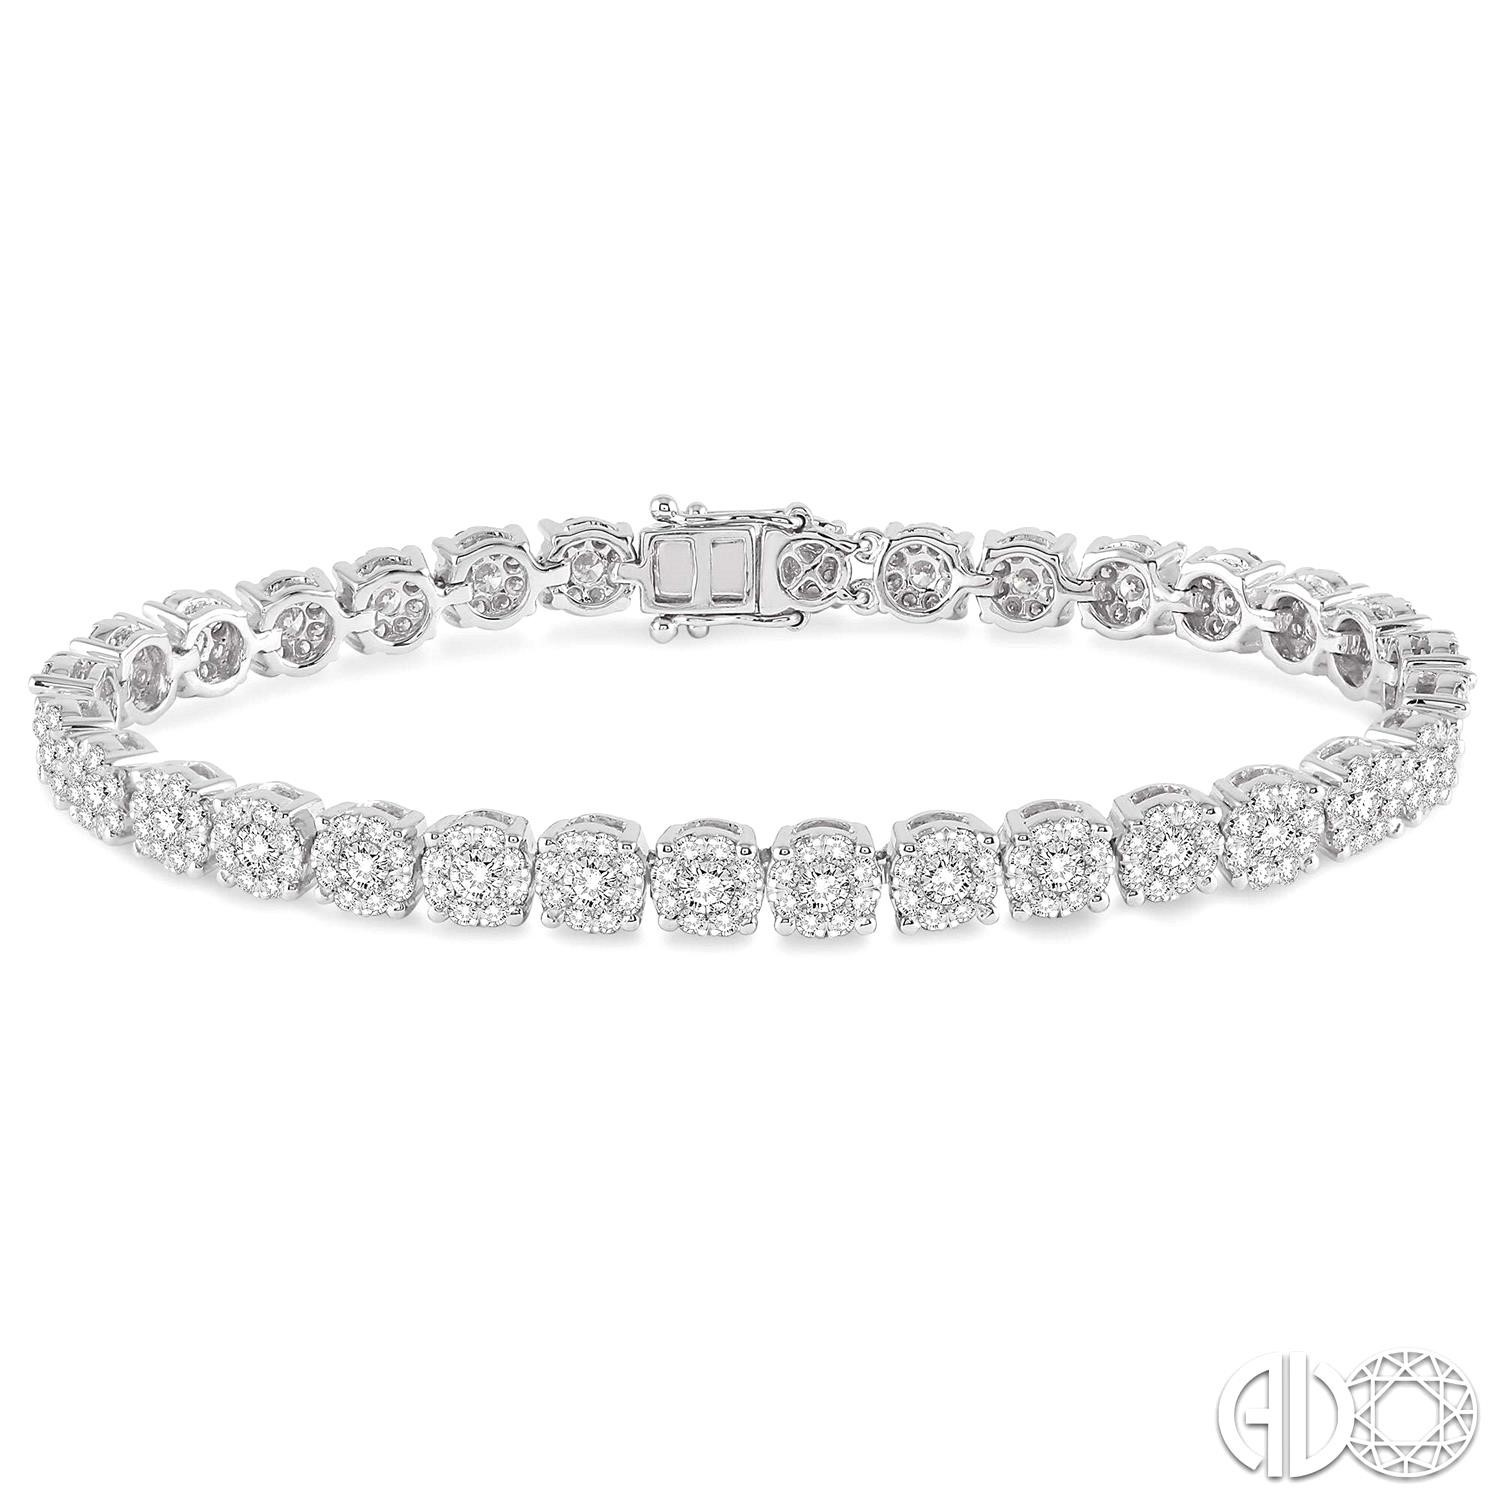 5 1/3 Ctw Round Cut Diamond Lovebright Bracelet in 14K White Gold